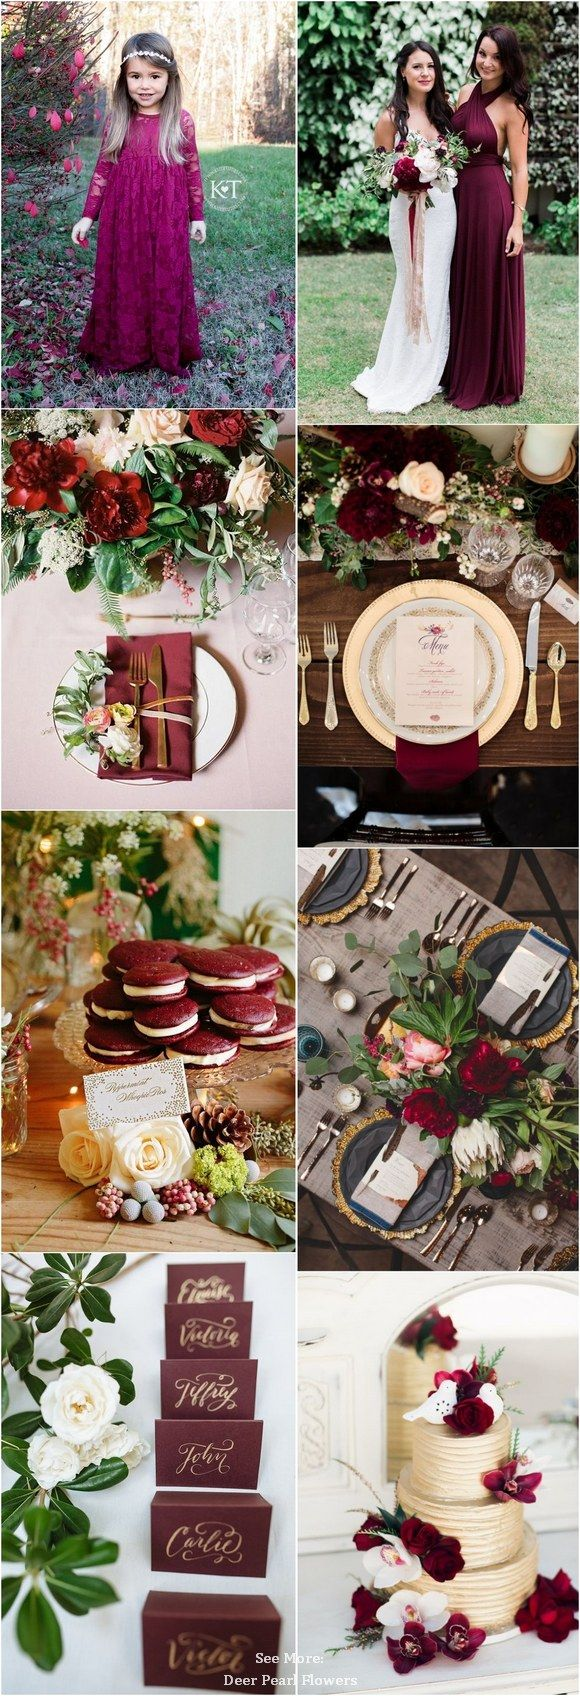 Pink and maroon wedding decor  burgundy and gold fall wedding color ideas